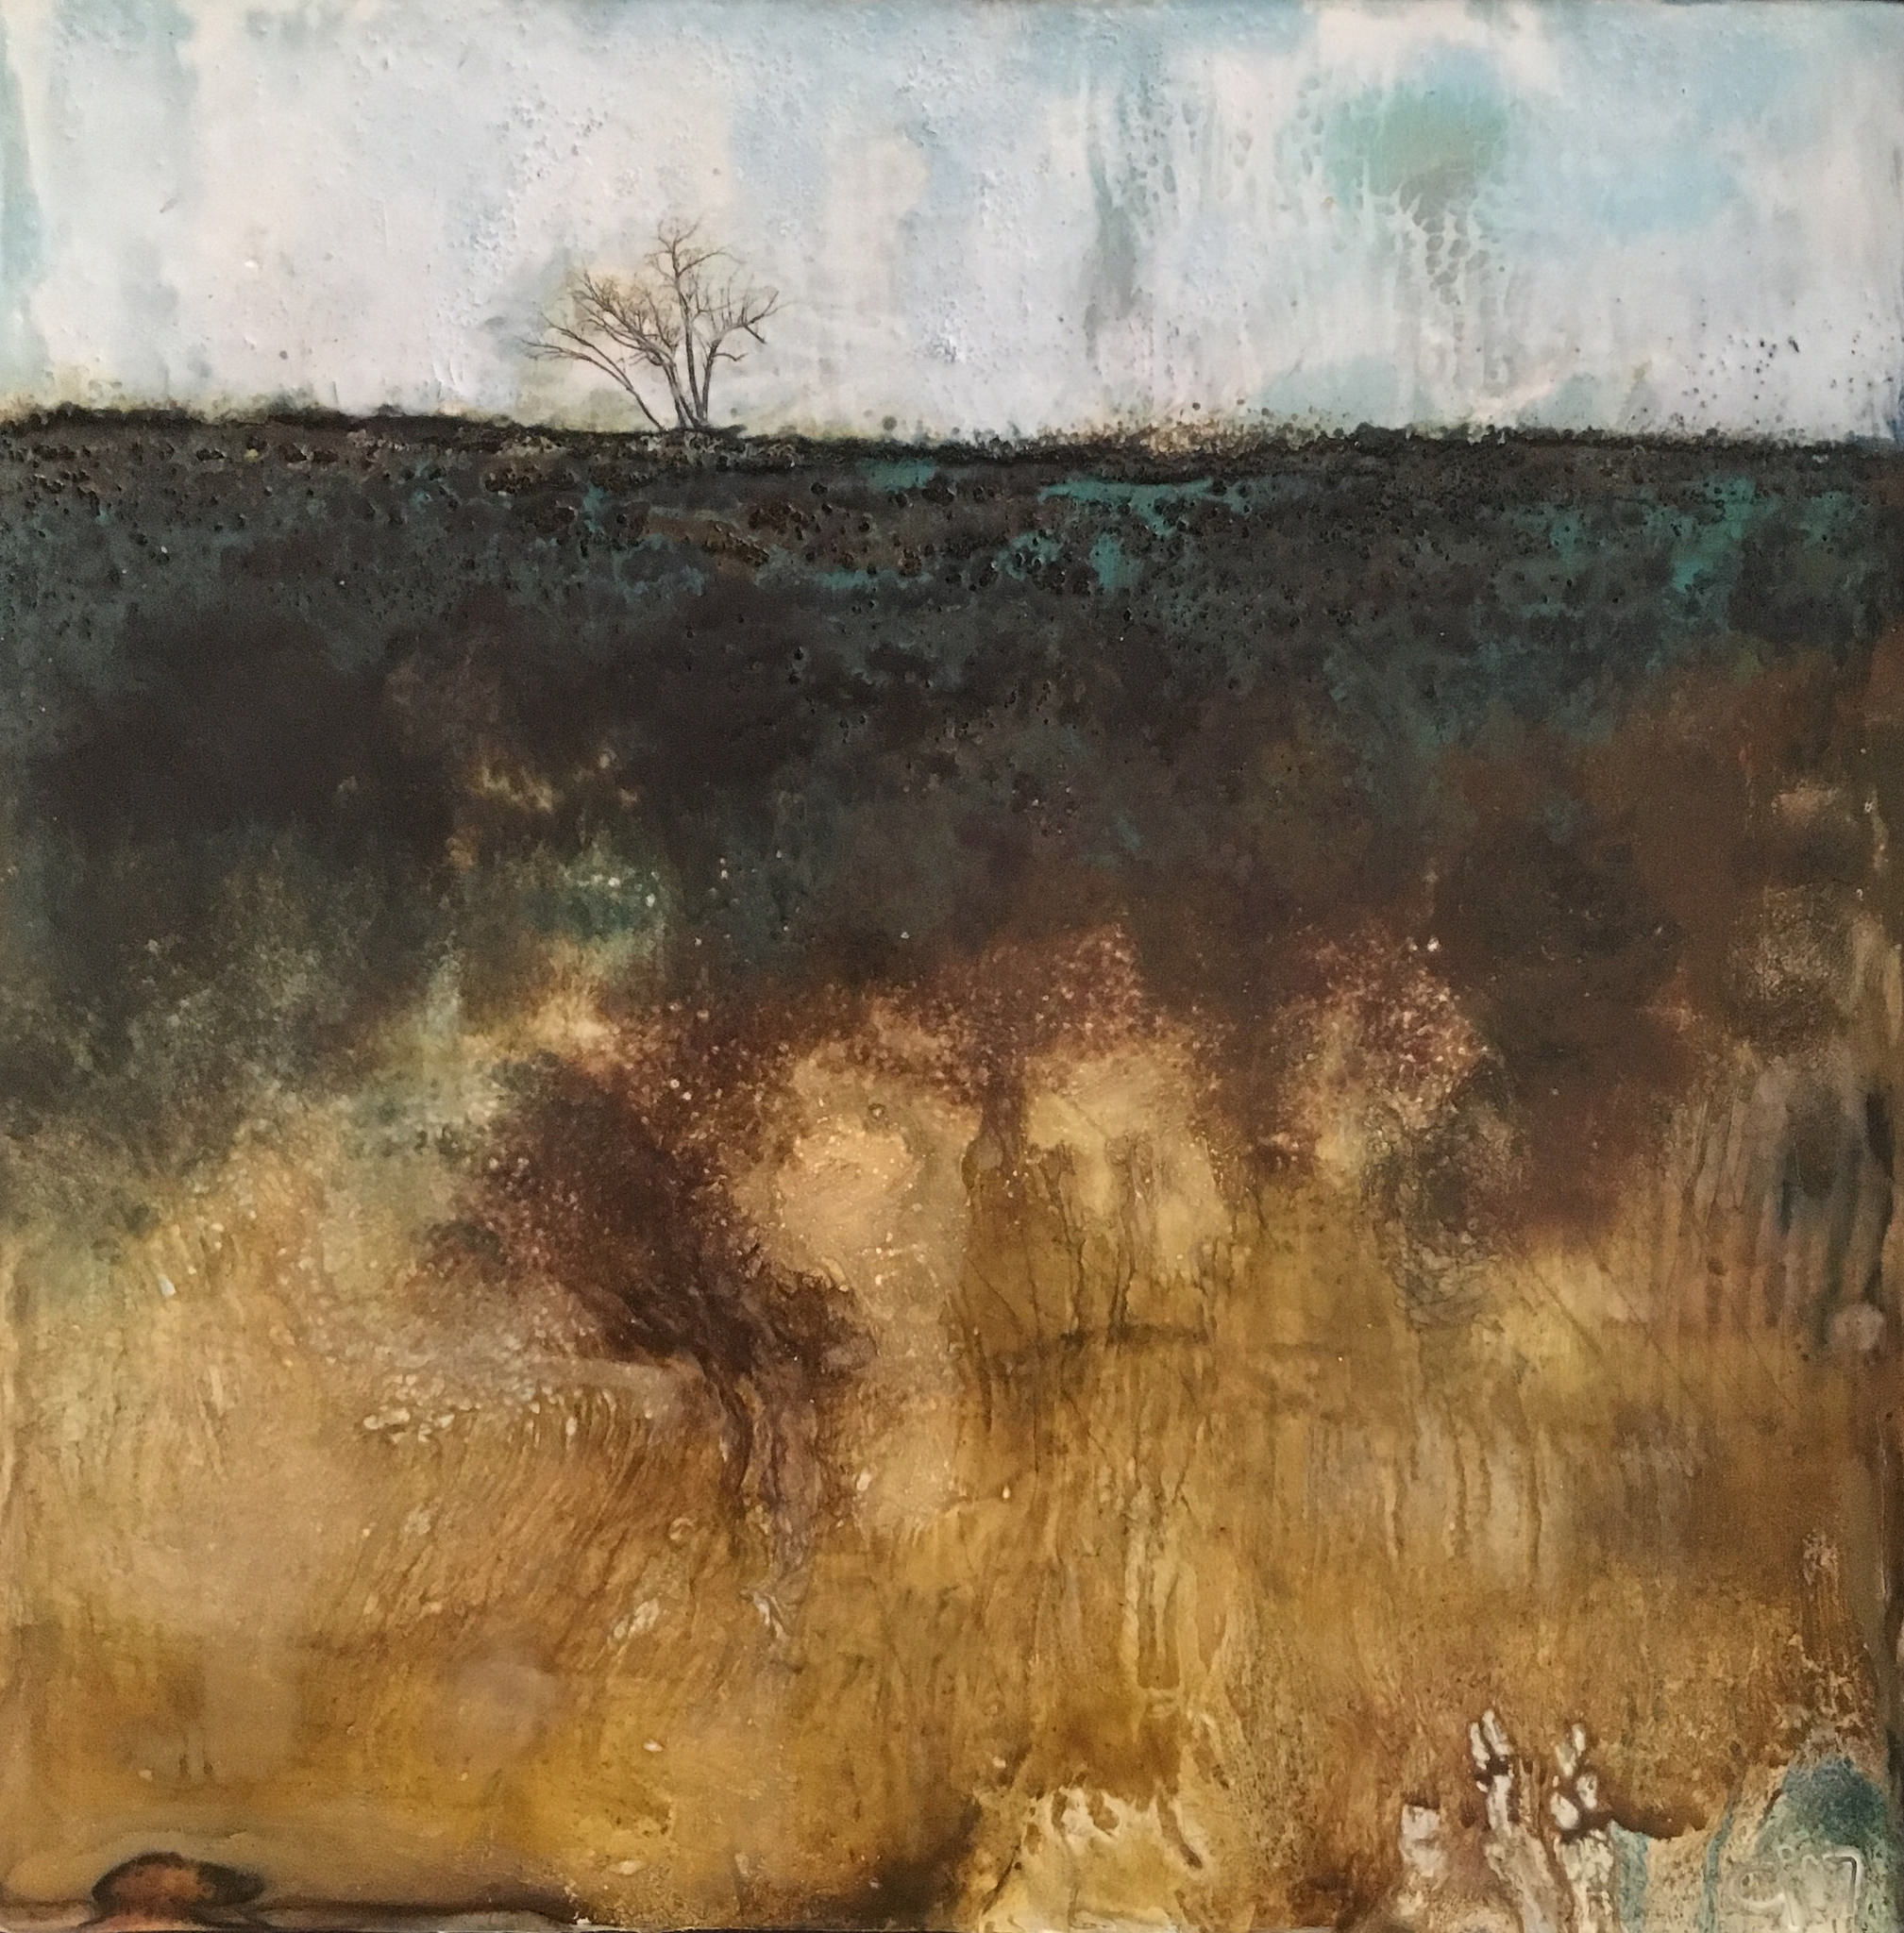 """""""Last Stand""""   8x8"""" framed  encaustic mixed media on board  SOLD  2017"""